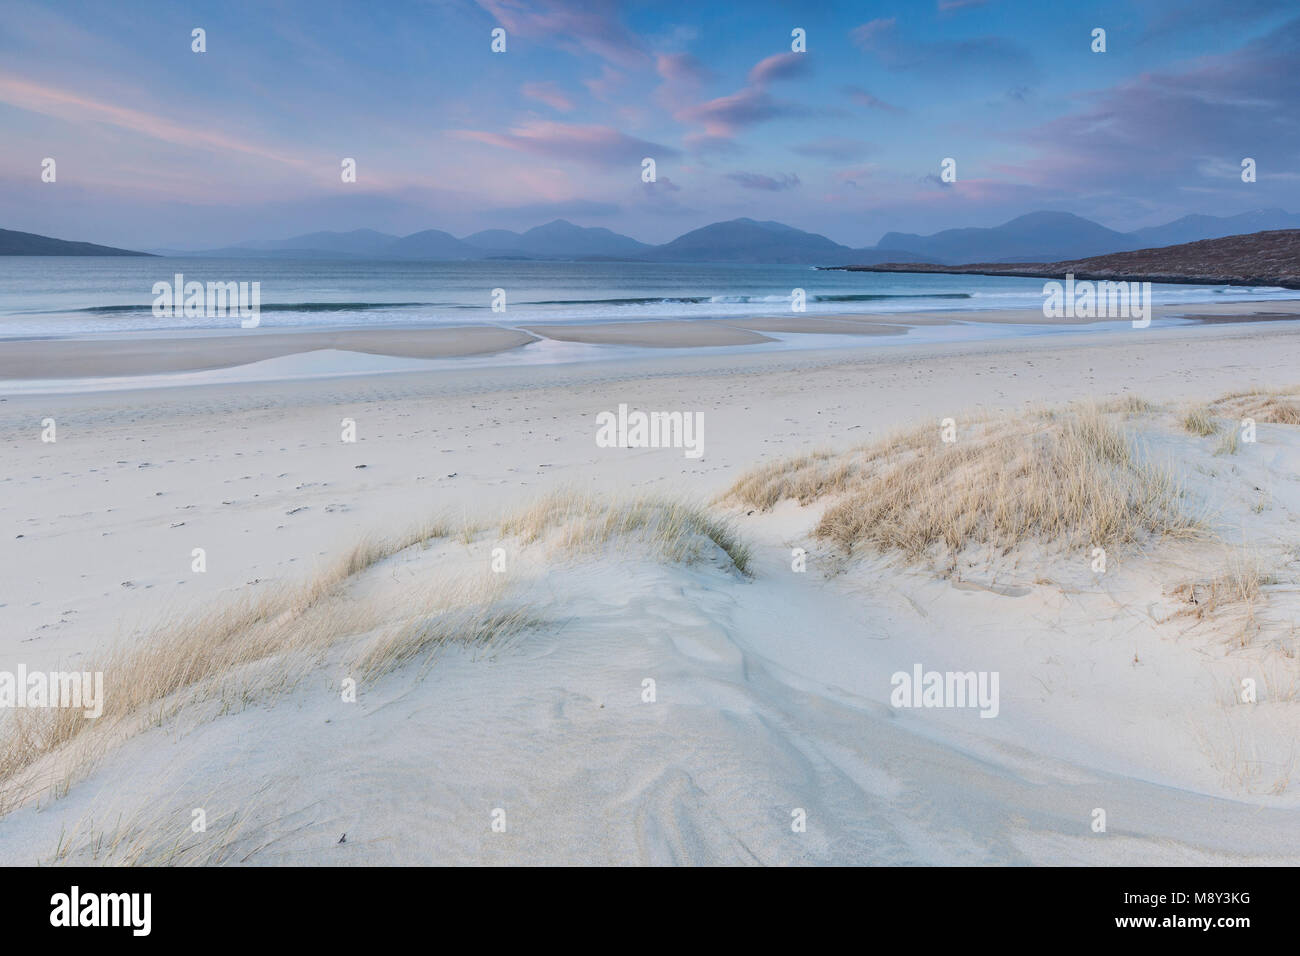 Luskentyre beach on the Isle of Harris in the Outer Hebrdes. - Stock Image